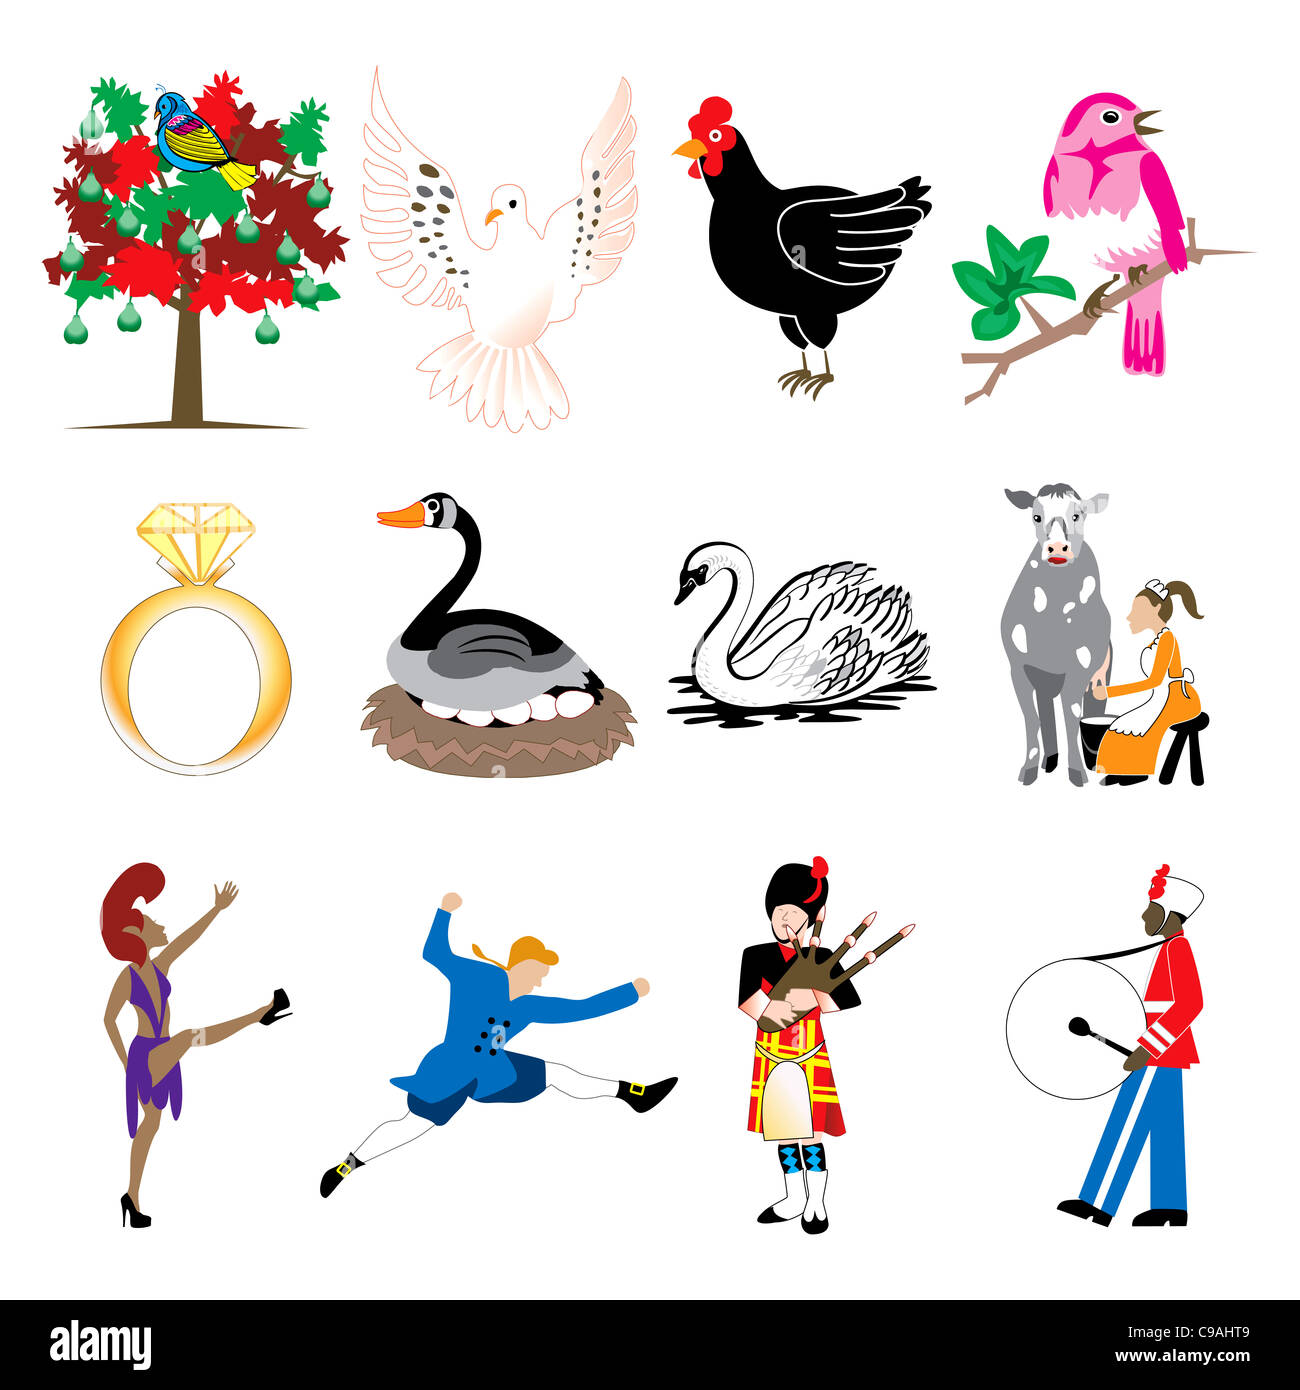 hight resolution of vector illustration card of the 12 days of christmas icons in full color stock